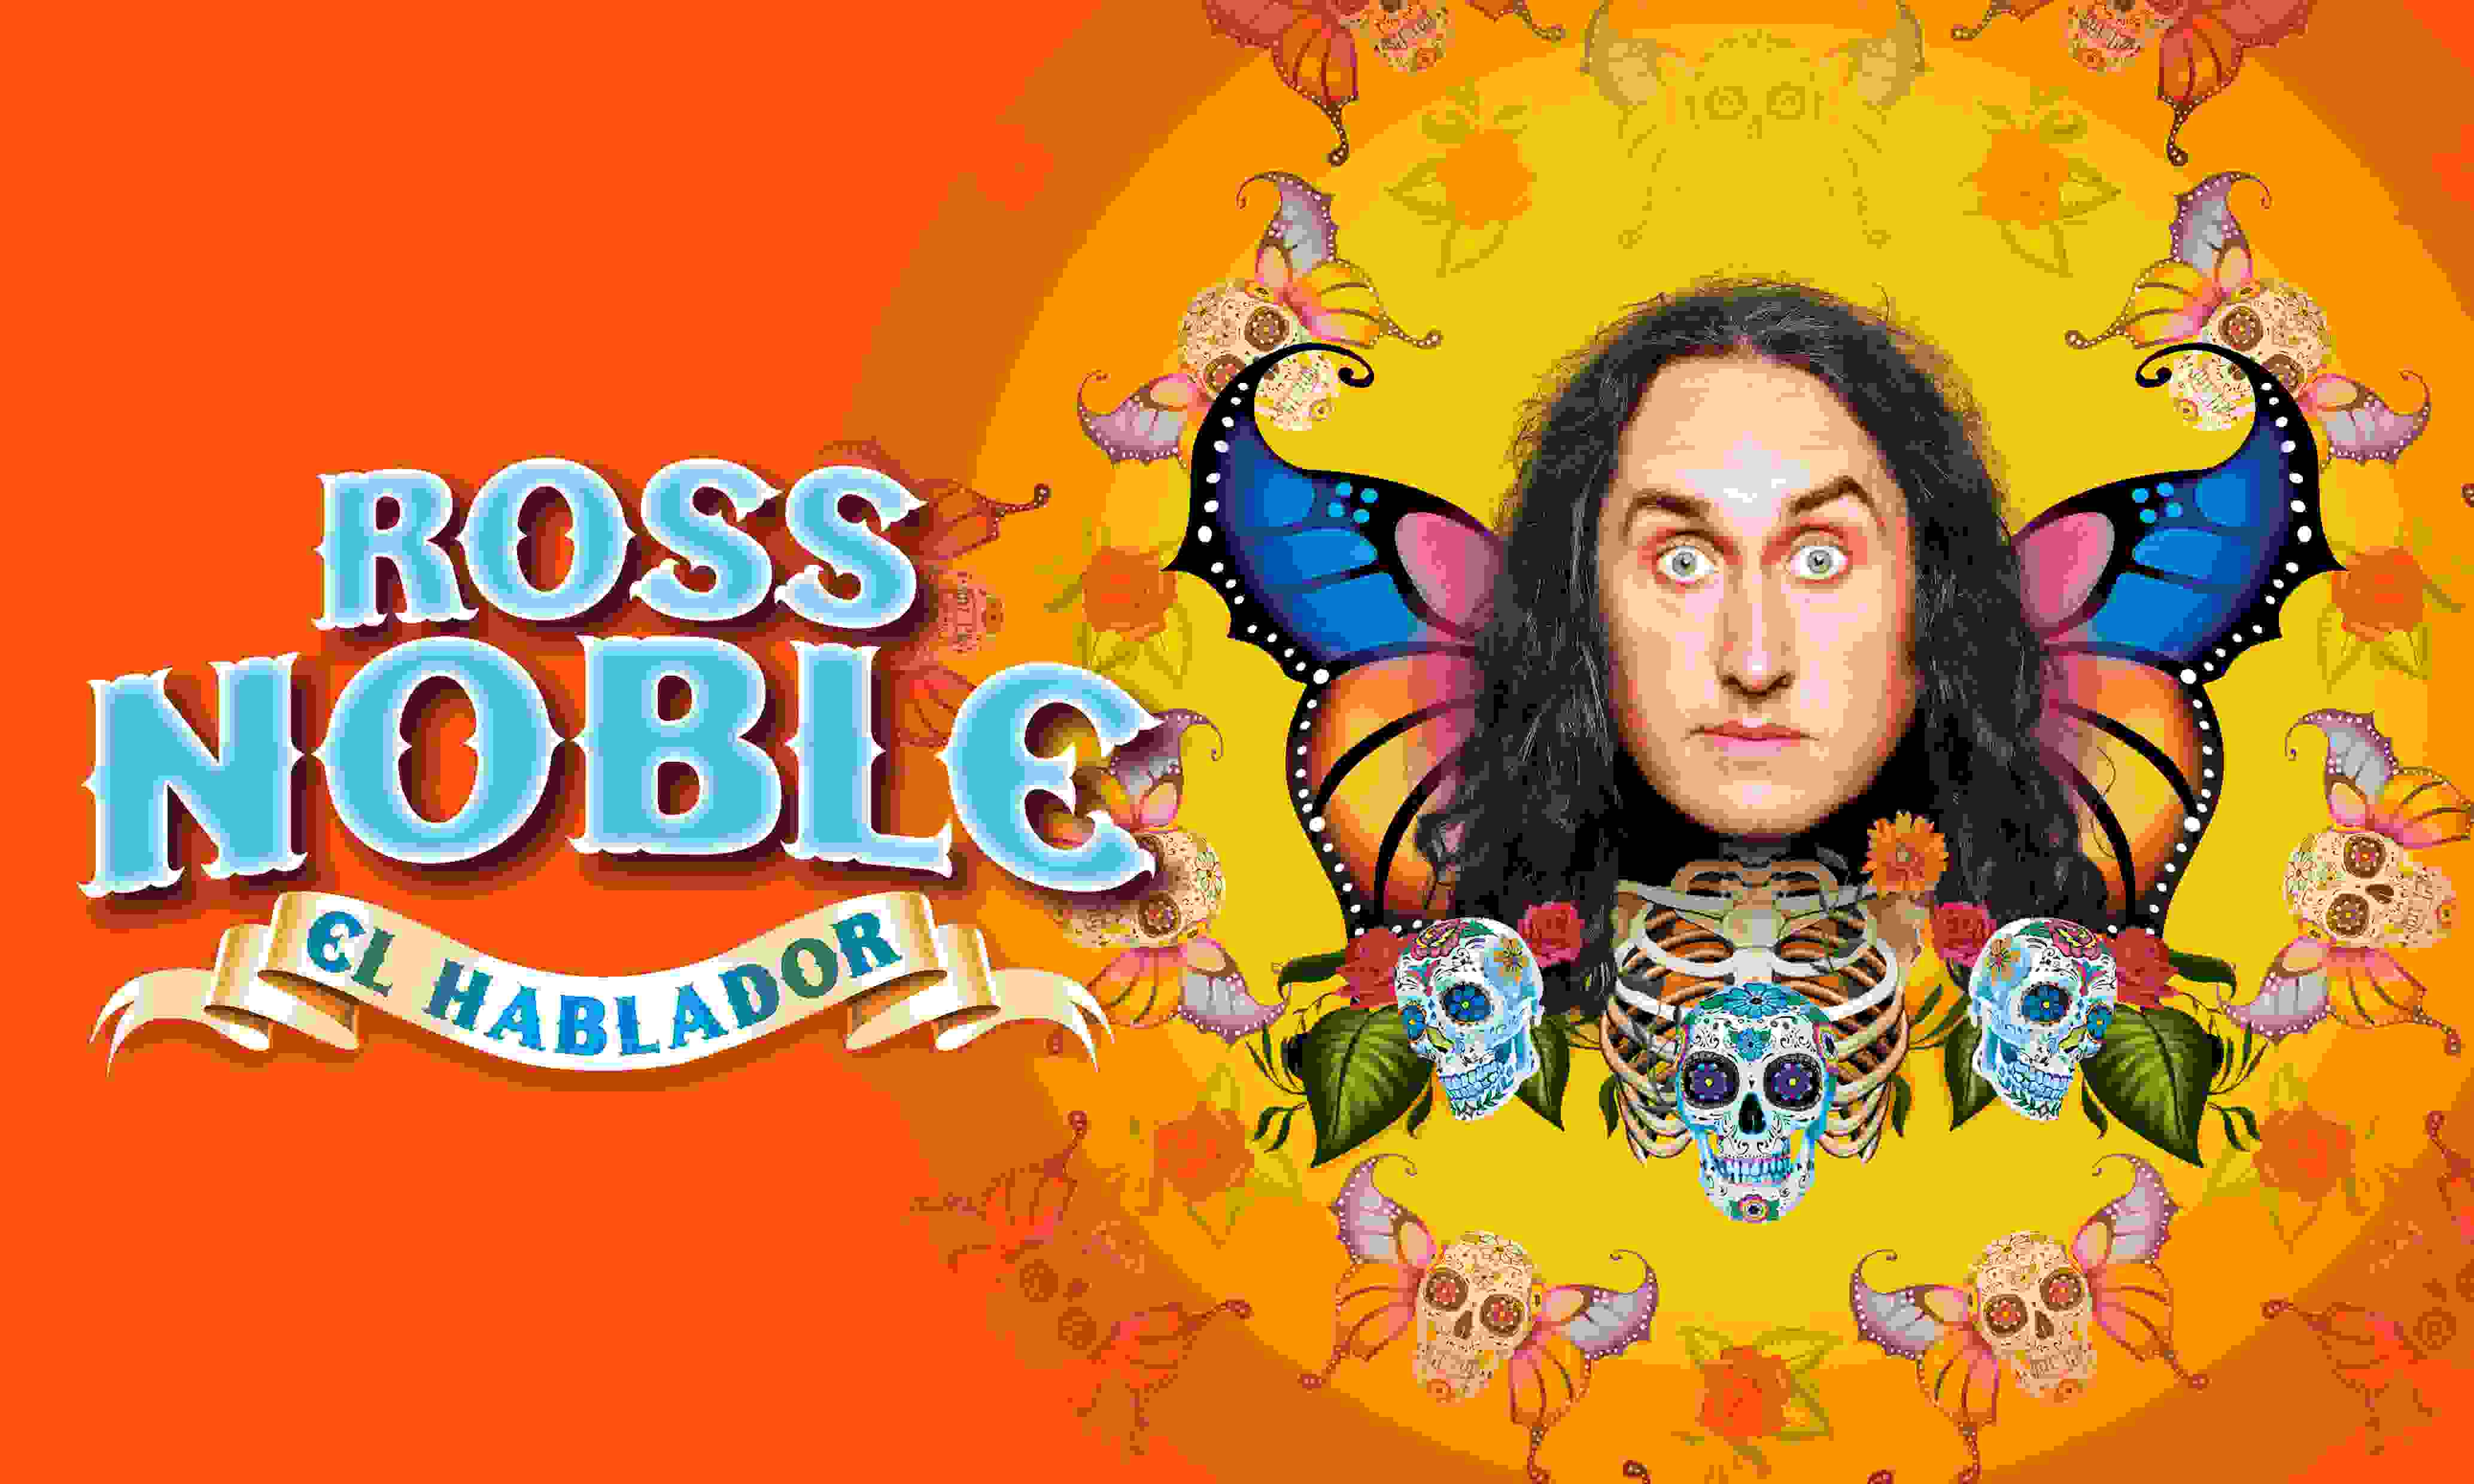 ROSS NOBLE EL HABLADOR - SOLD OUT